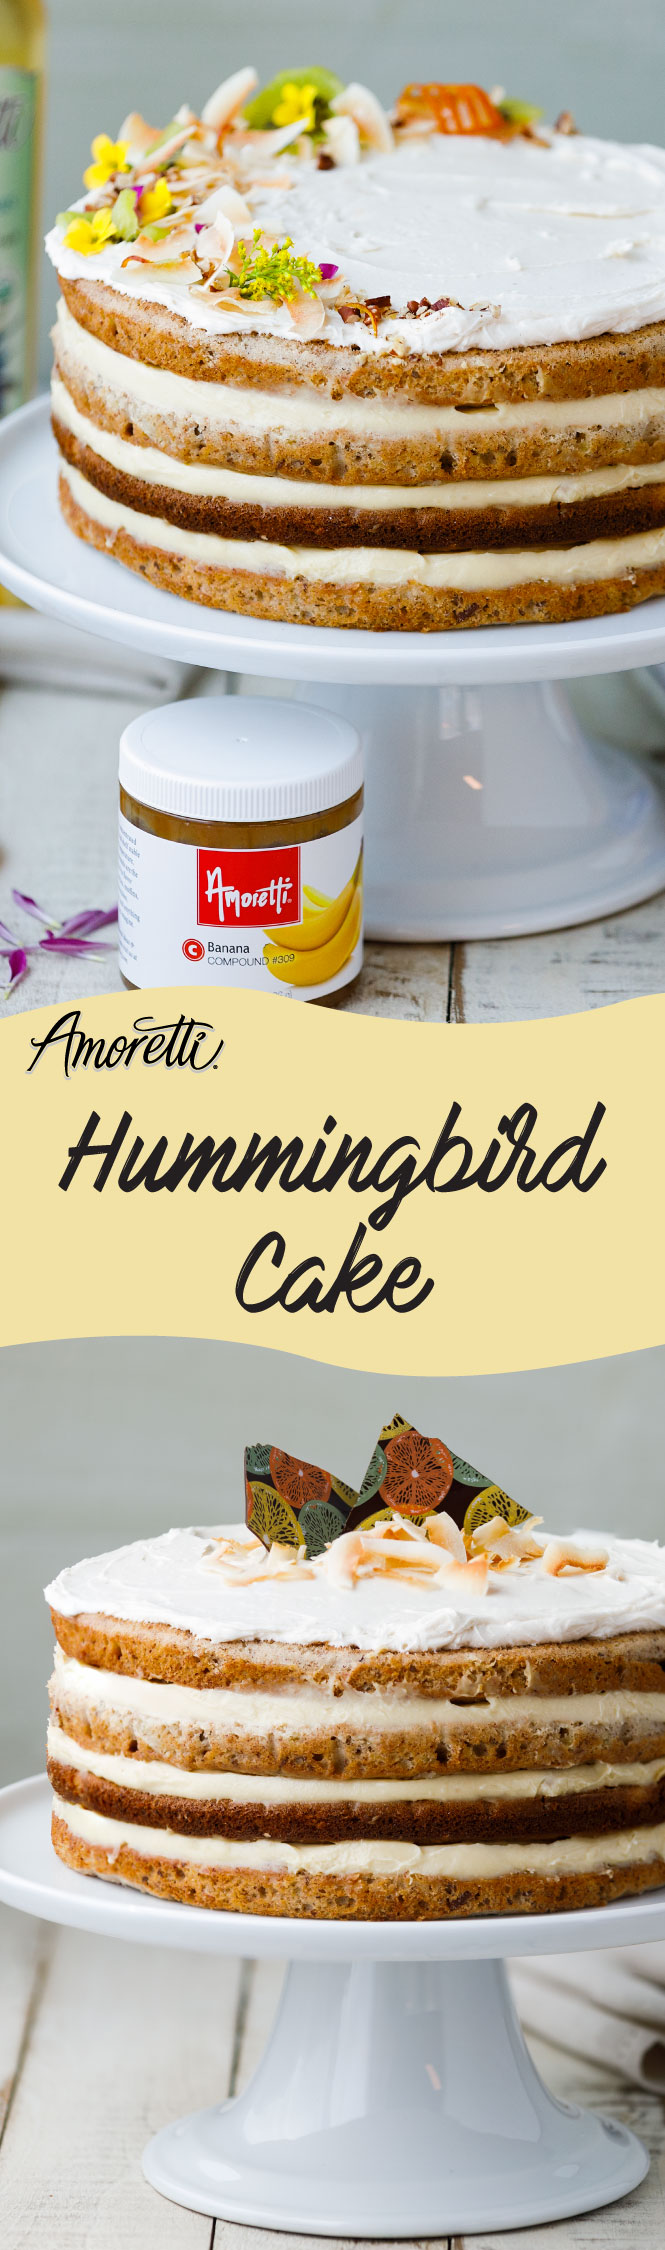 A show-stopping Hummingbird Cake for spring!